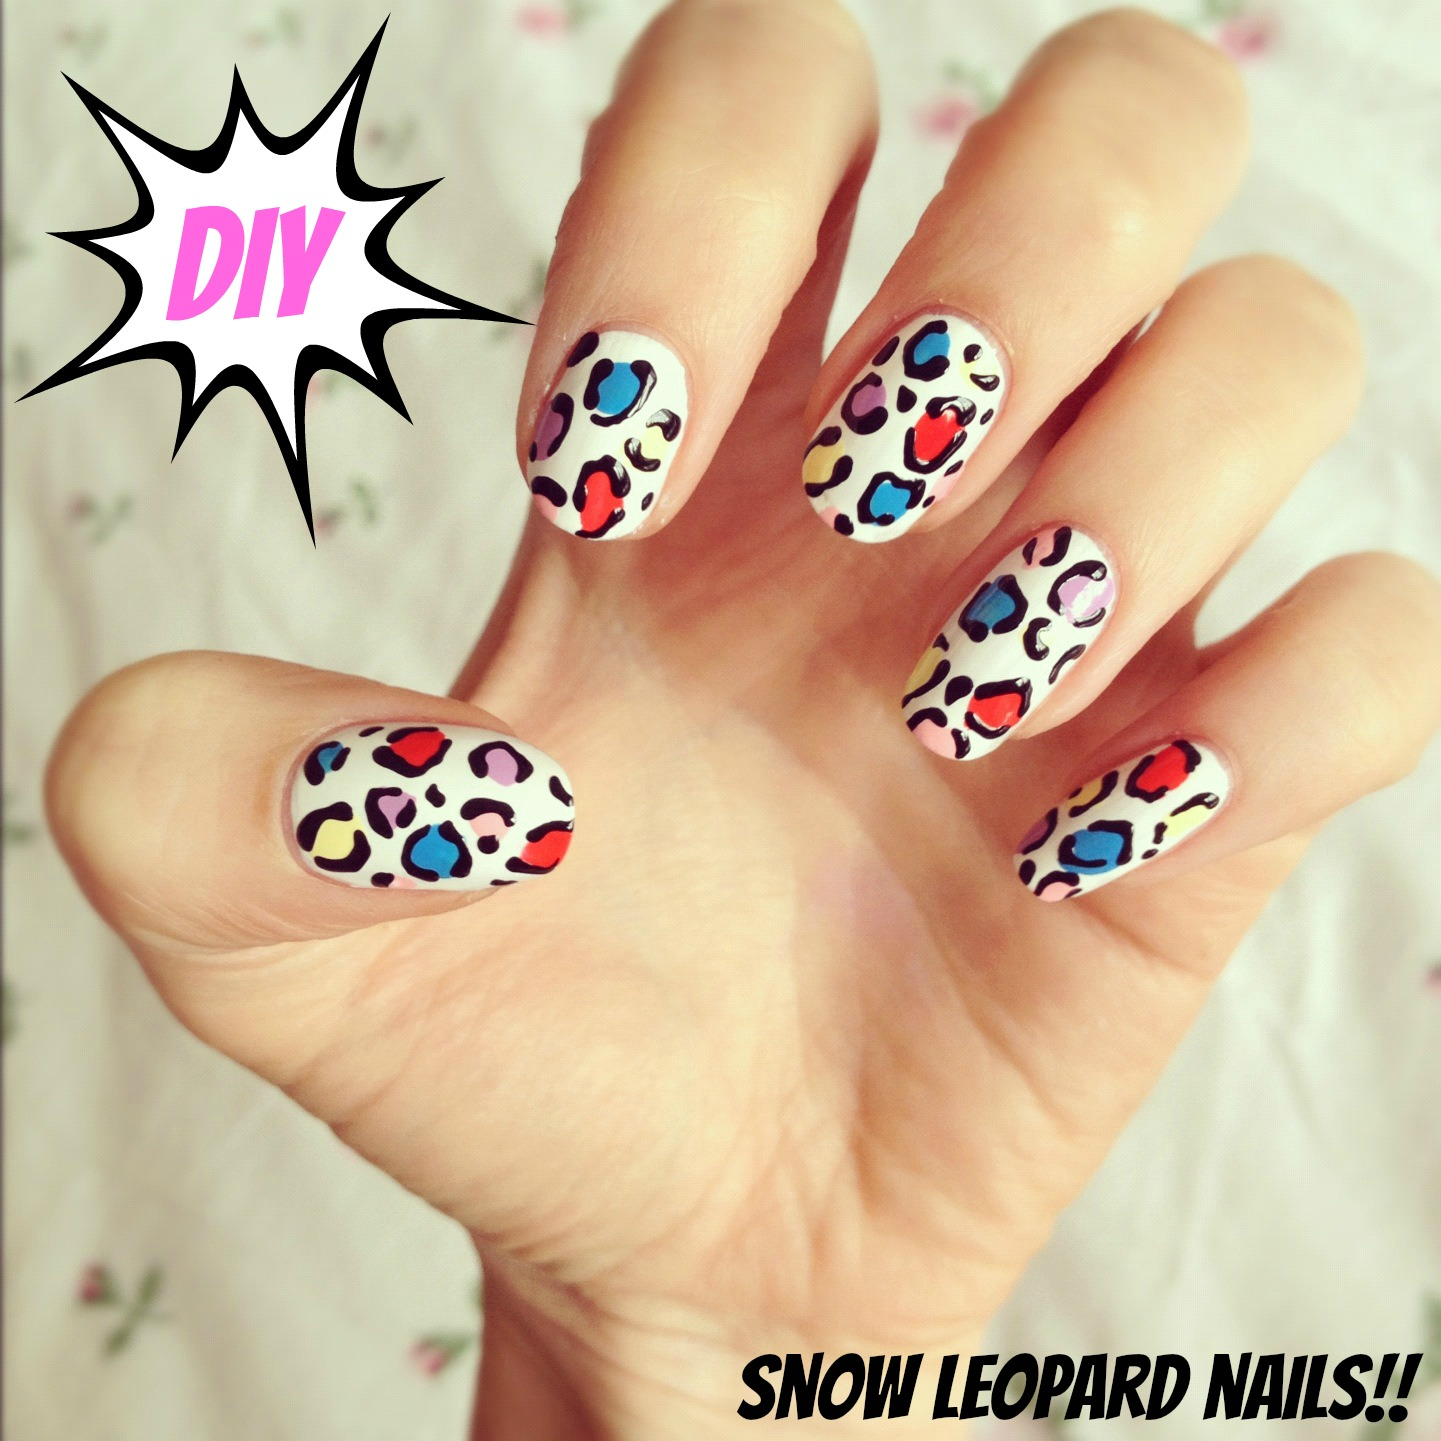 Easy Nail Art: DIY Snow Leopard Nail Art!